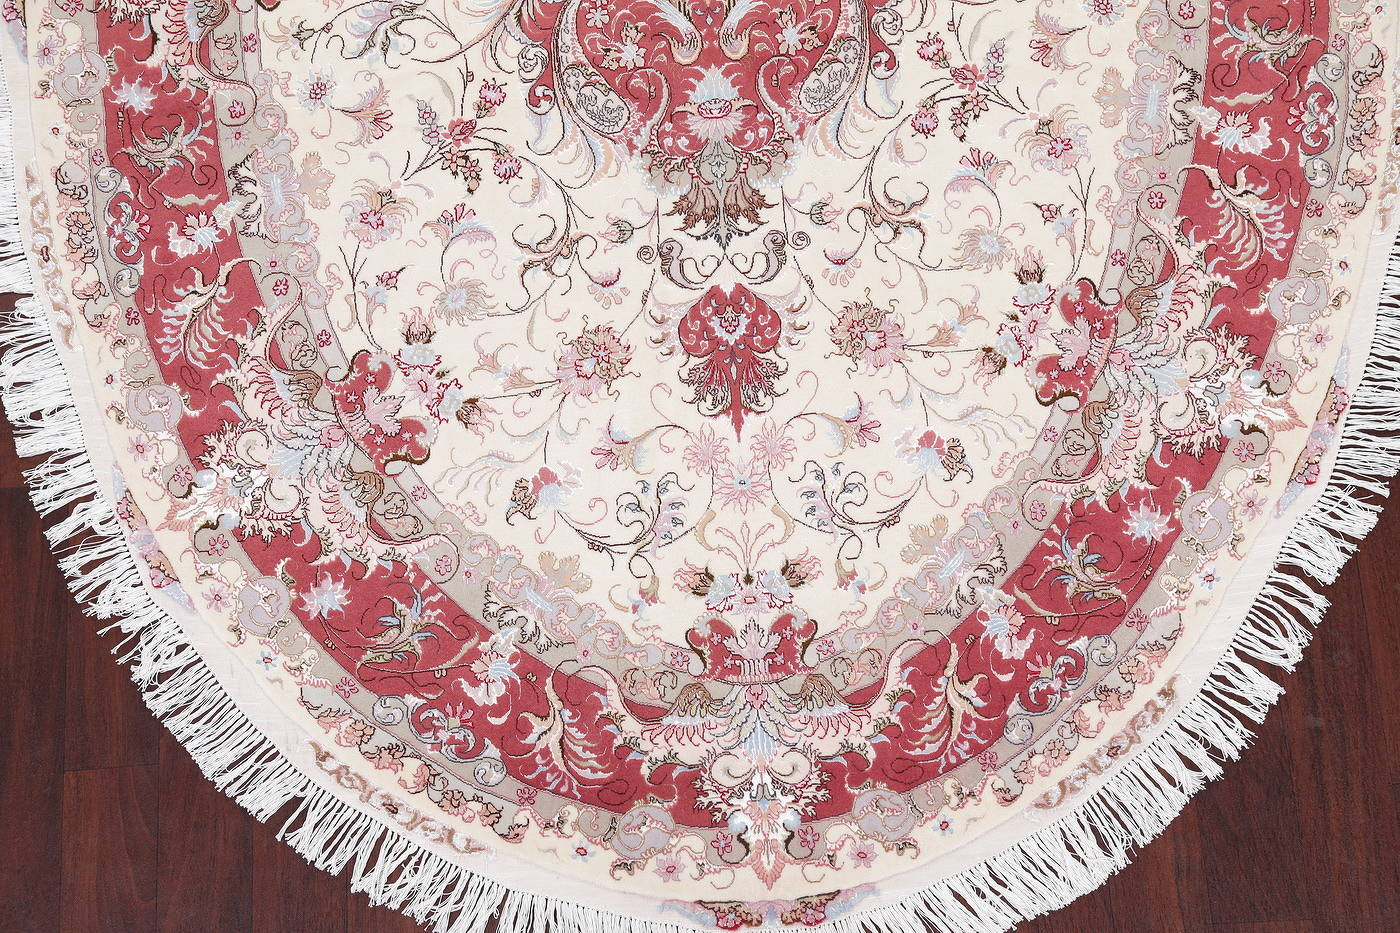 Ivory Floral Tabriz Persian Oval Area Rug 7x10 image 5